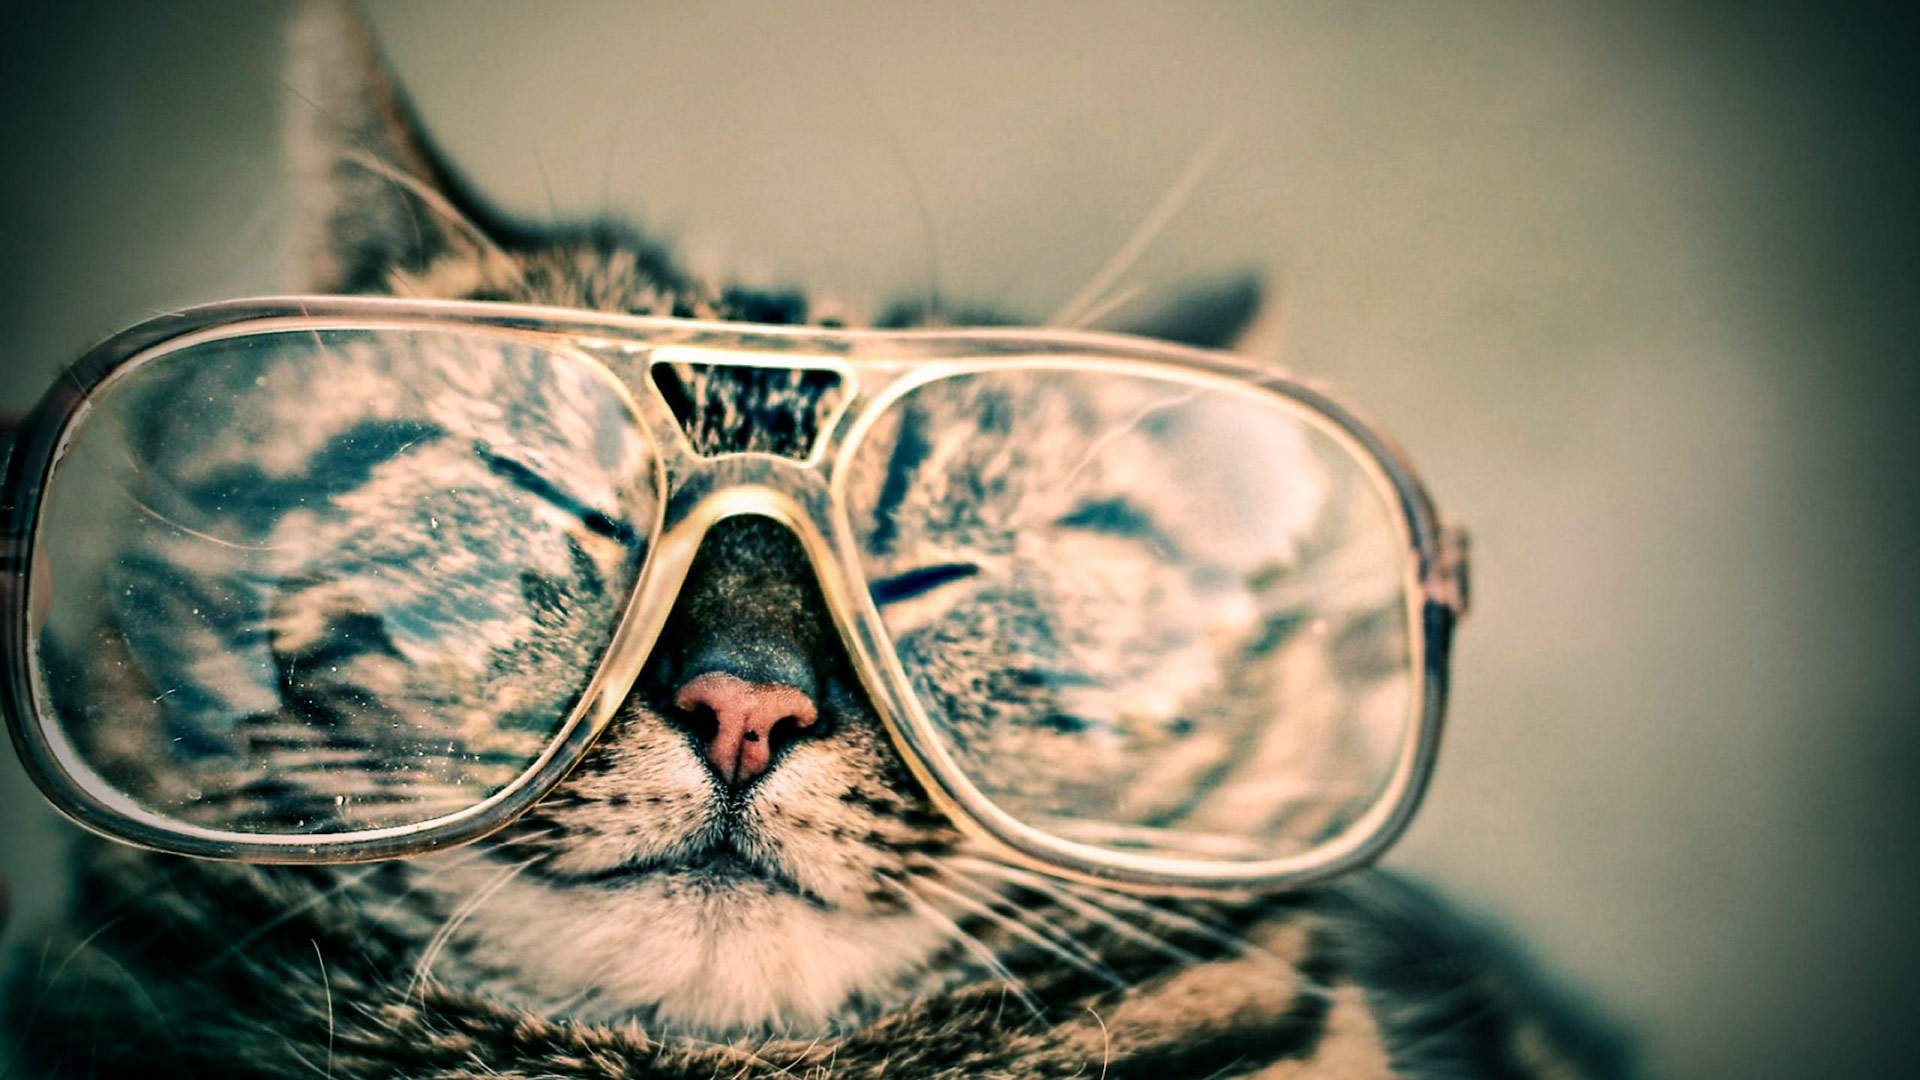 make church cool cat with glasses